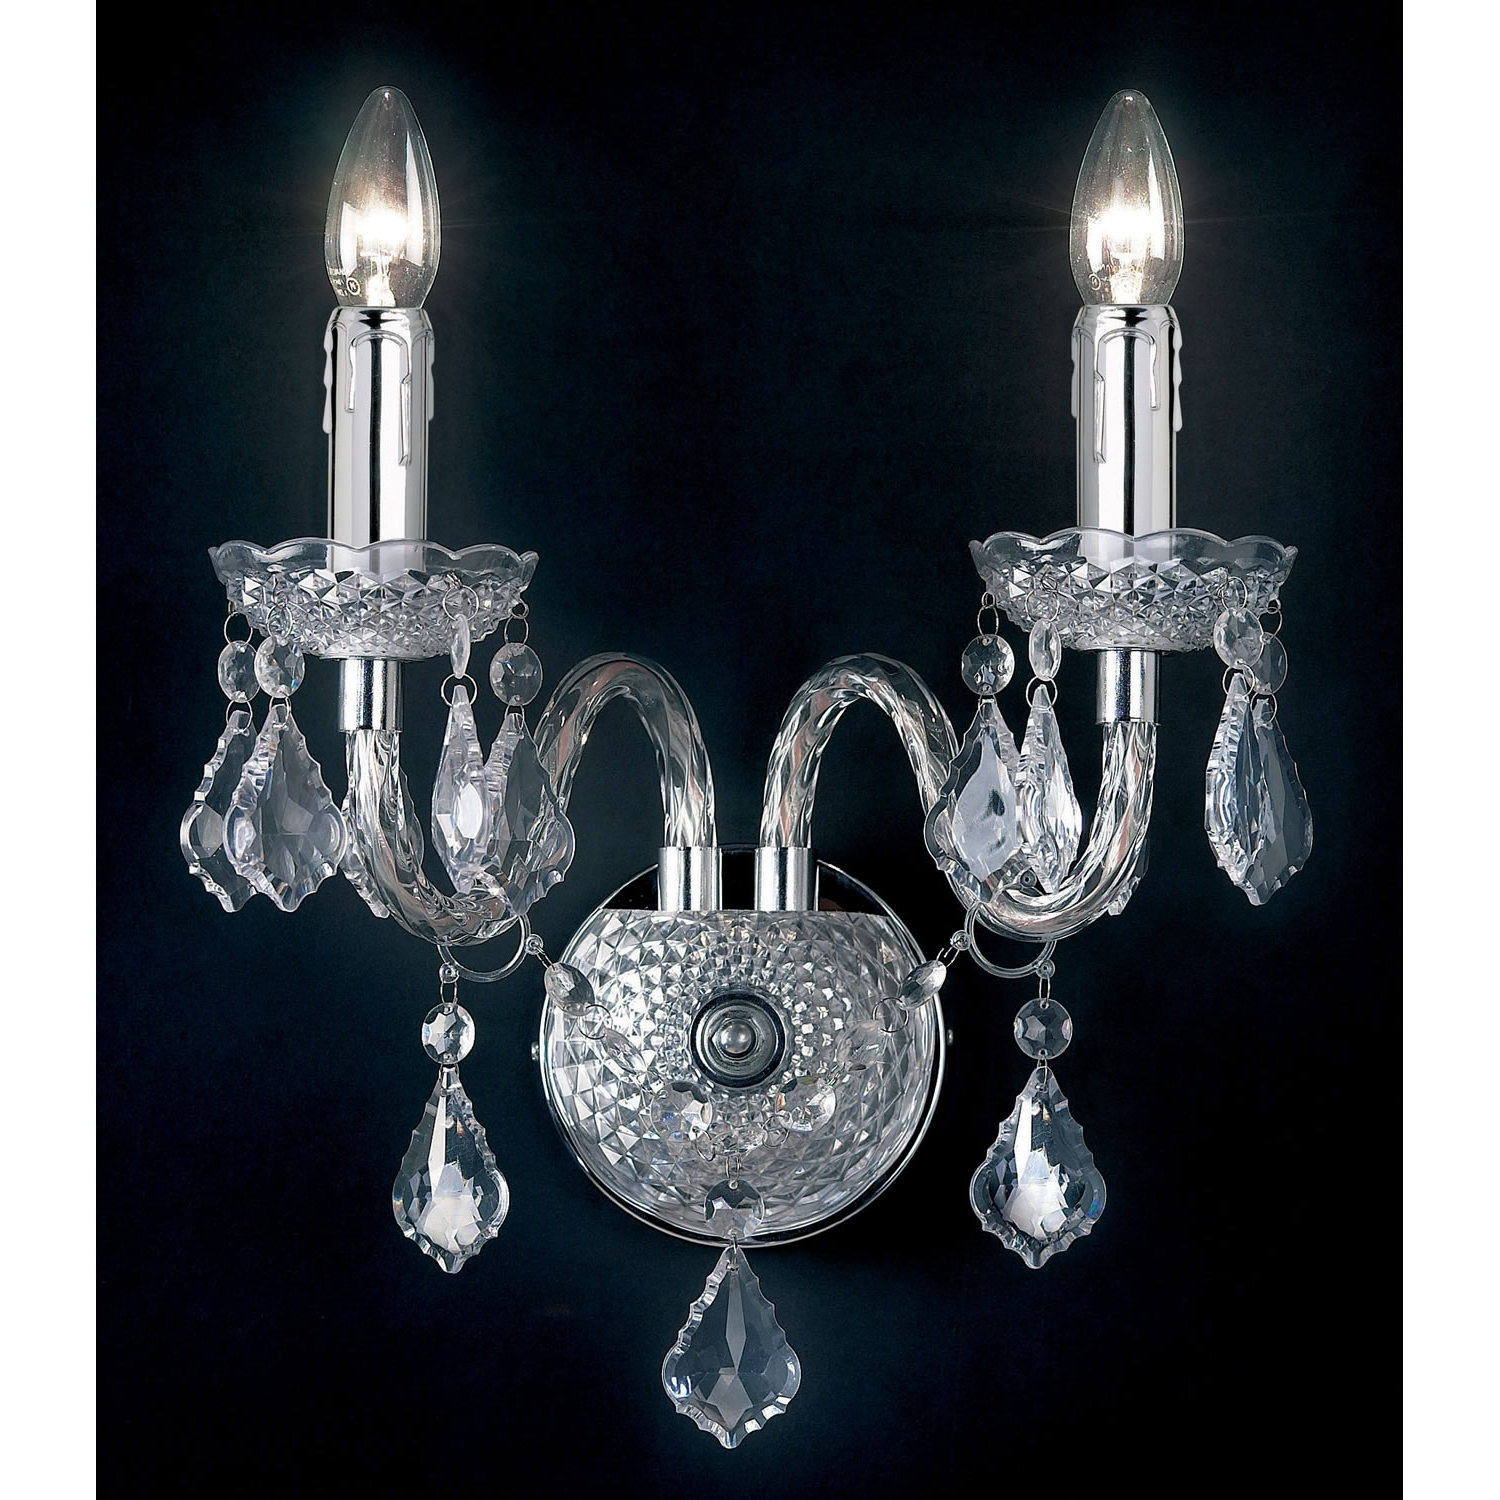 Endon Lighting 2 Light Wall Chandelier In Clear E2 80 93 Next Day Intended For 2018 Endon Lighting Chandeliers (View 5 of 20)